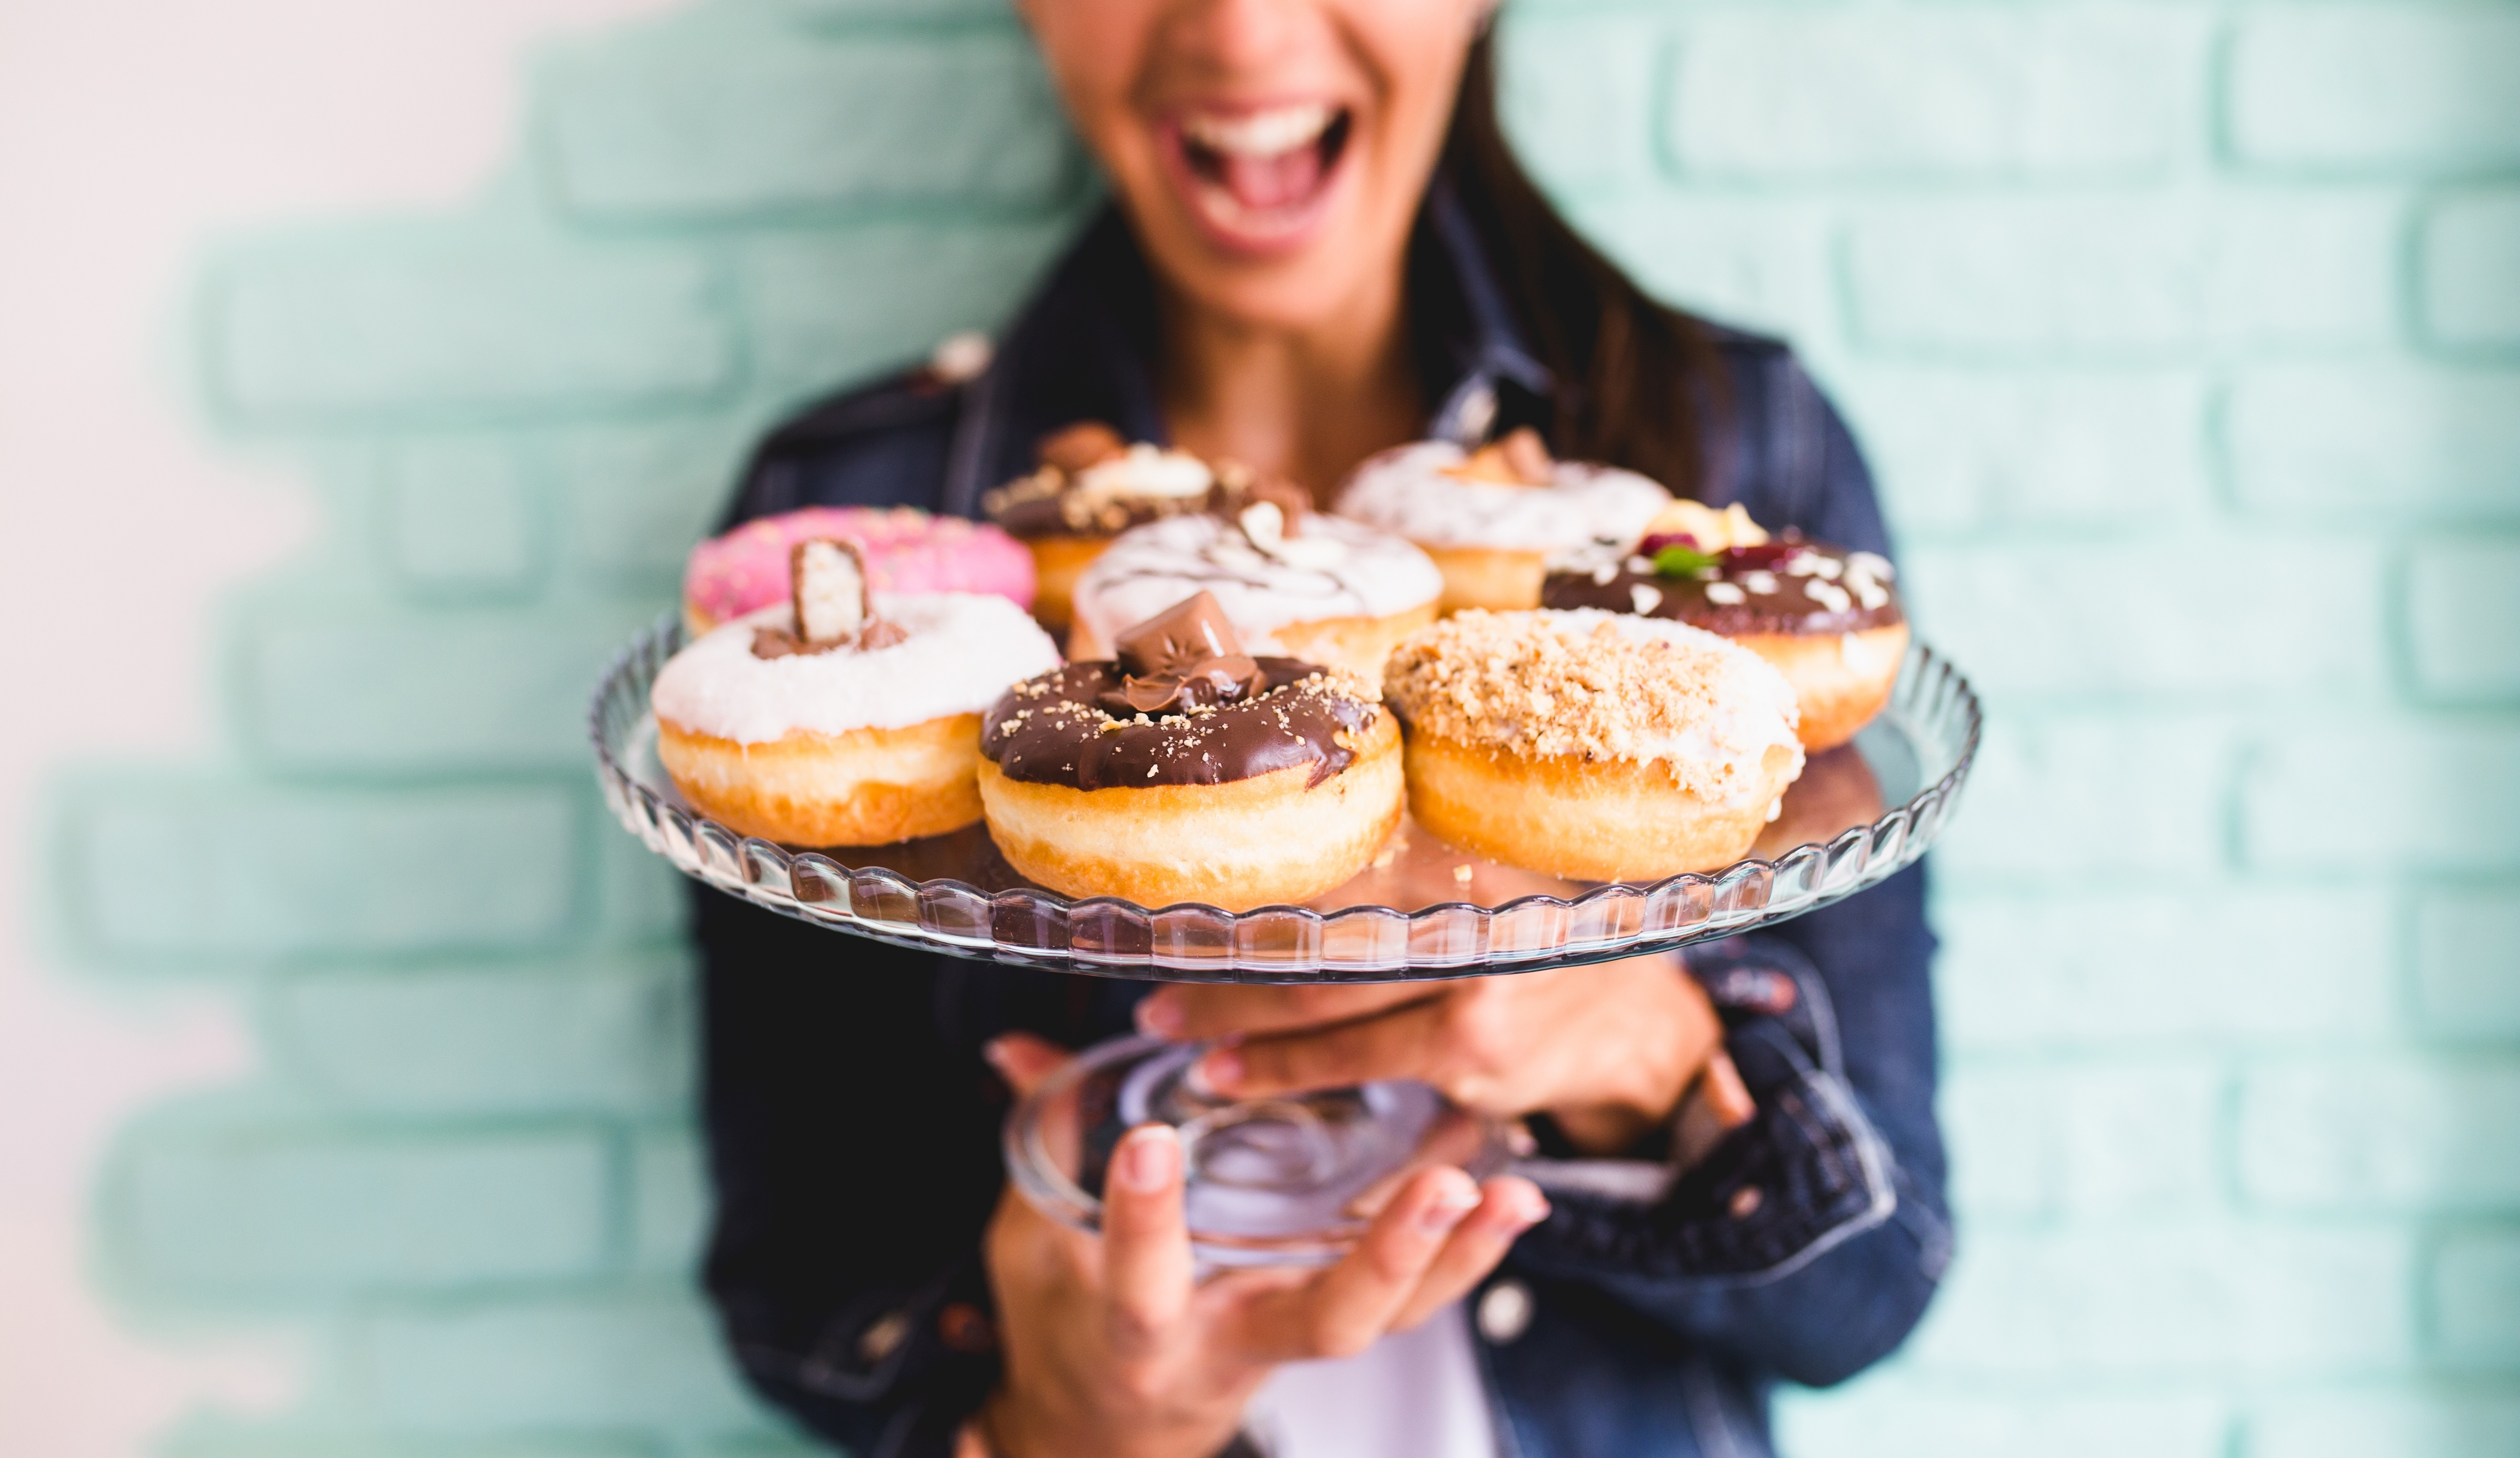 ecstatic_woman_holding_plate_of_donuts.jpg